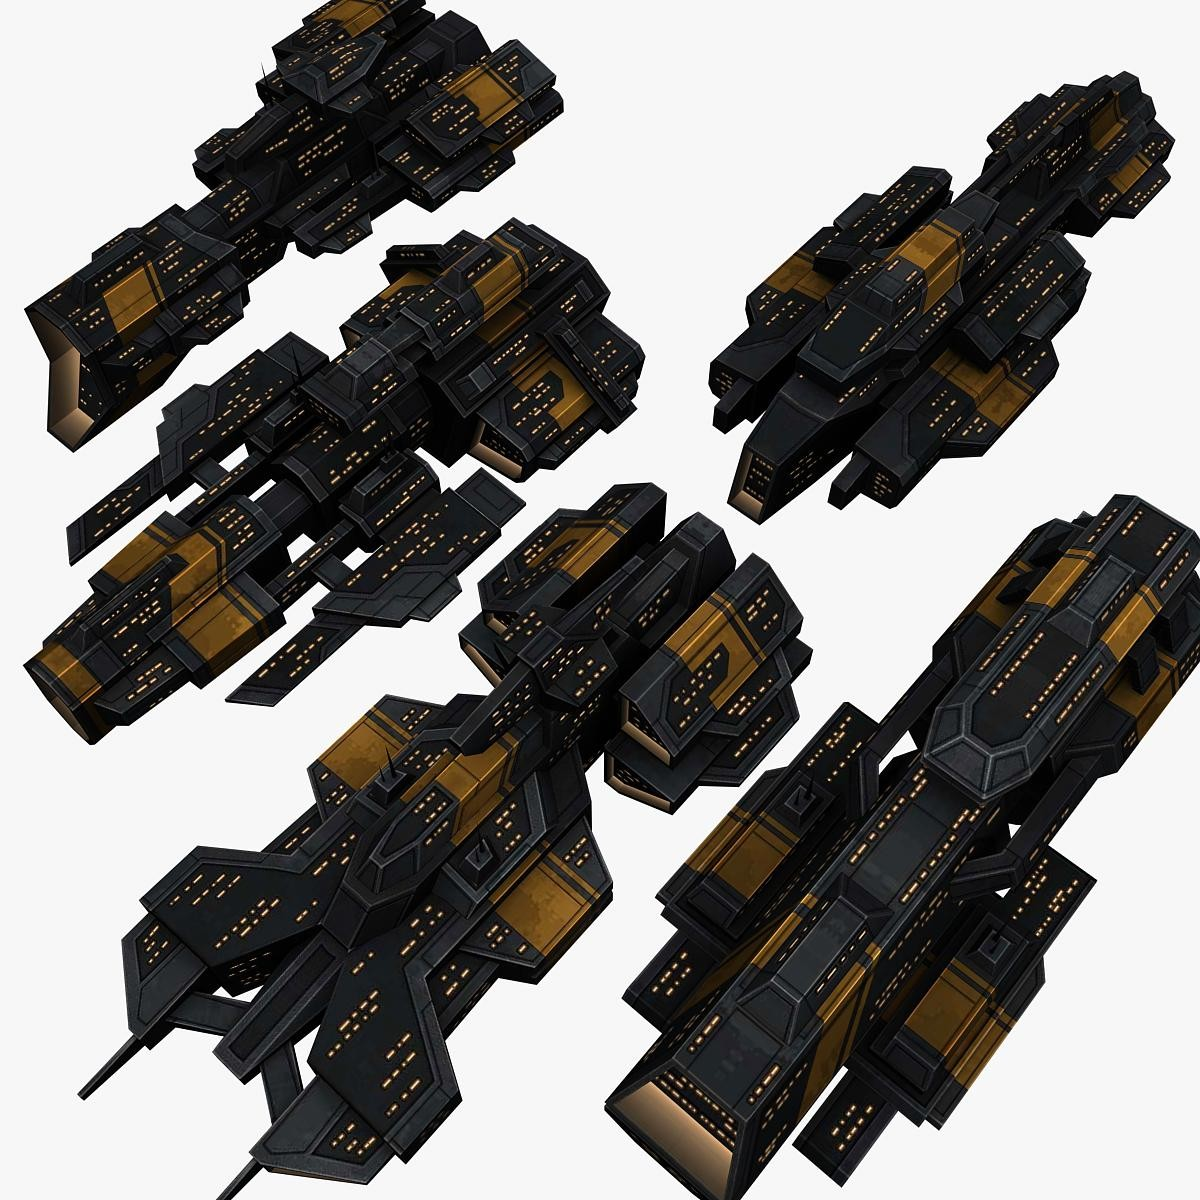 5_space_battleships_preview_0.jpg